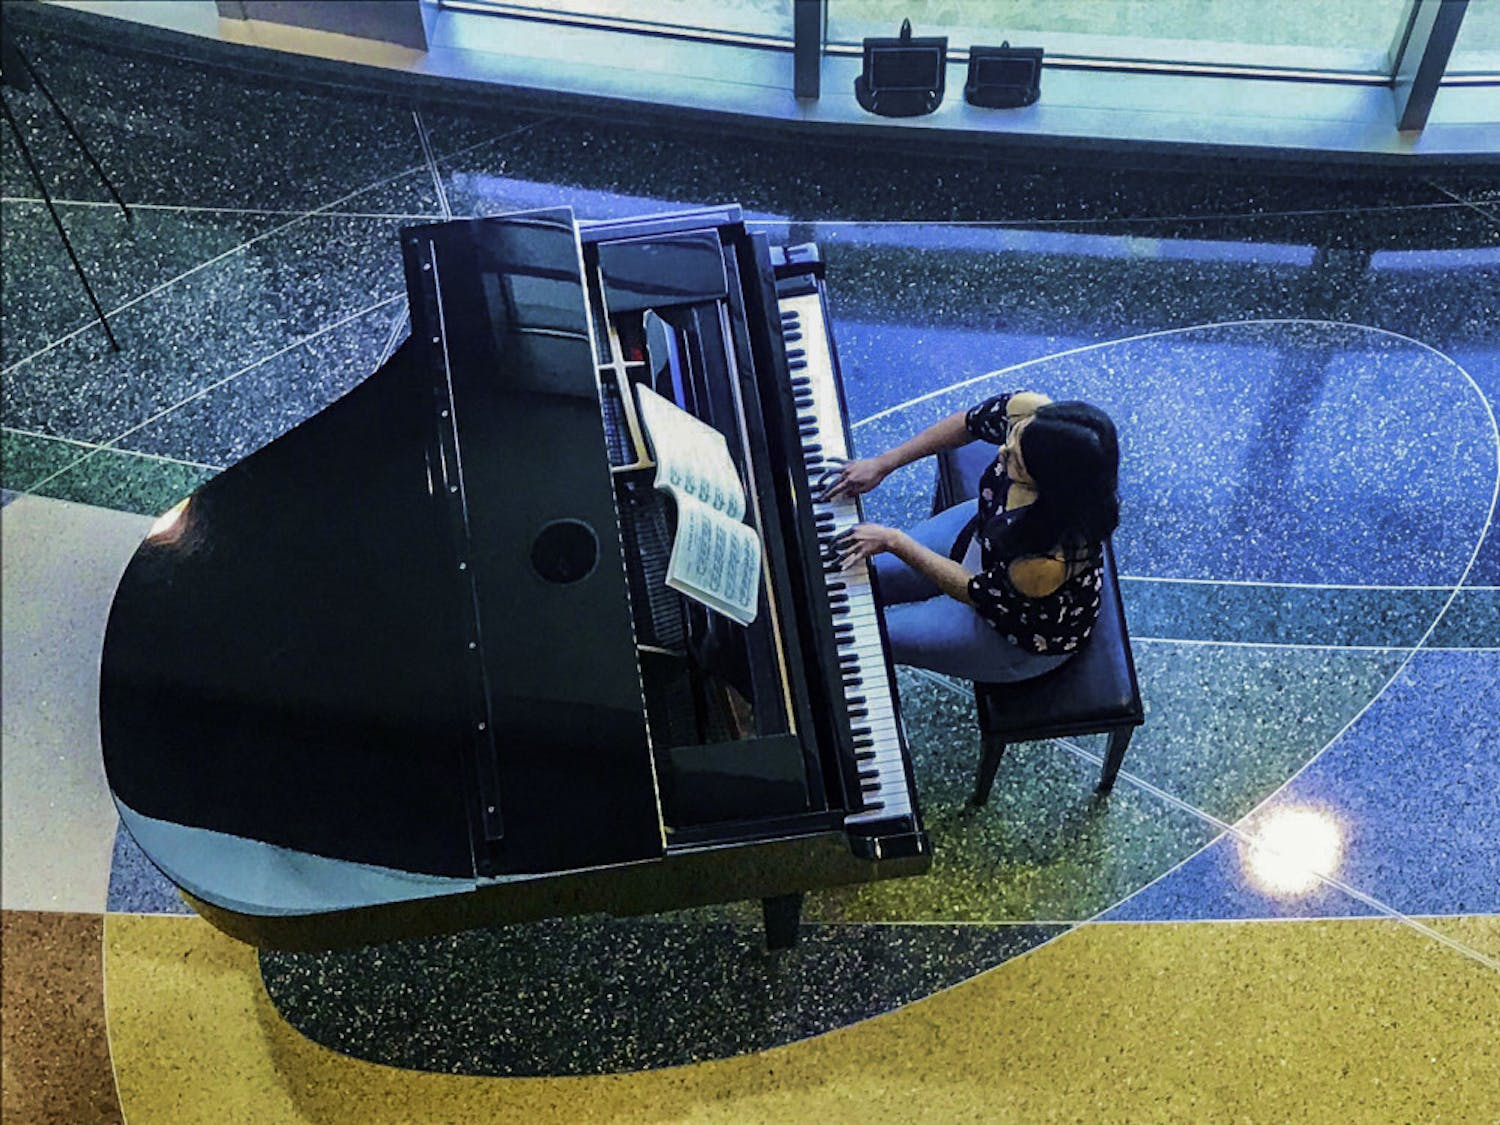 UF's International Piano Festival participant Ahui plays classical music at UF Health Shands Hospital.